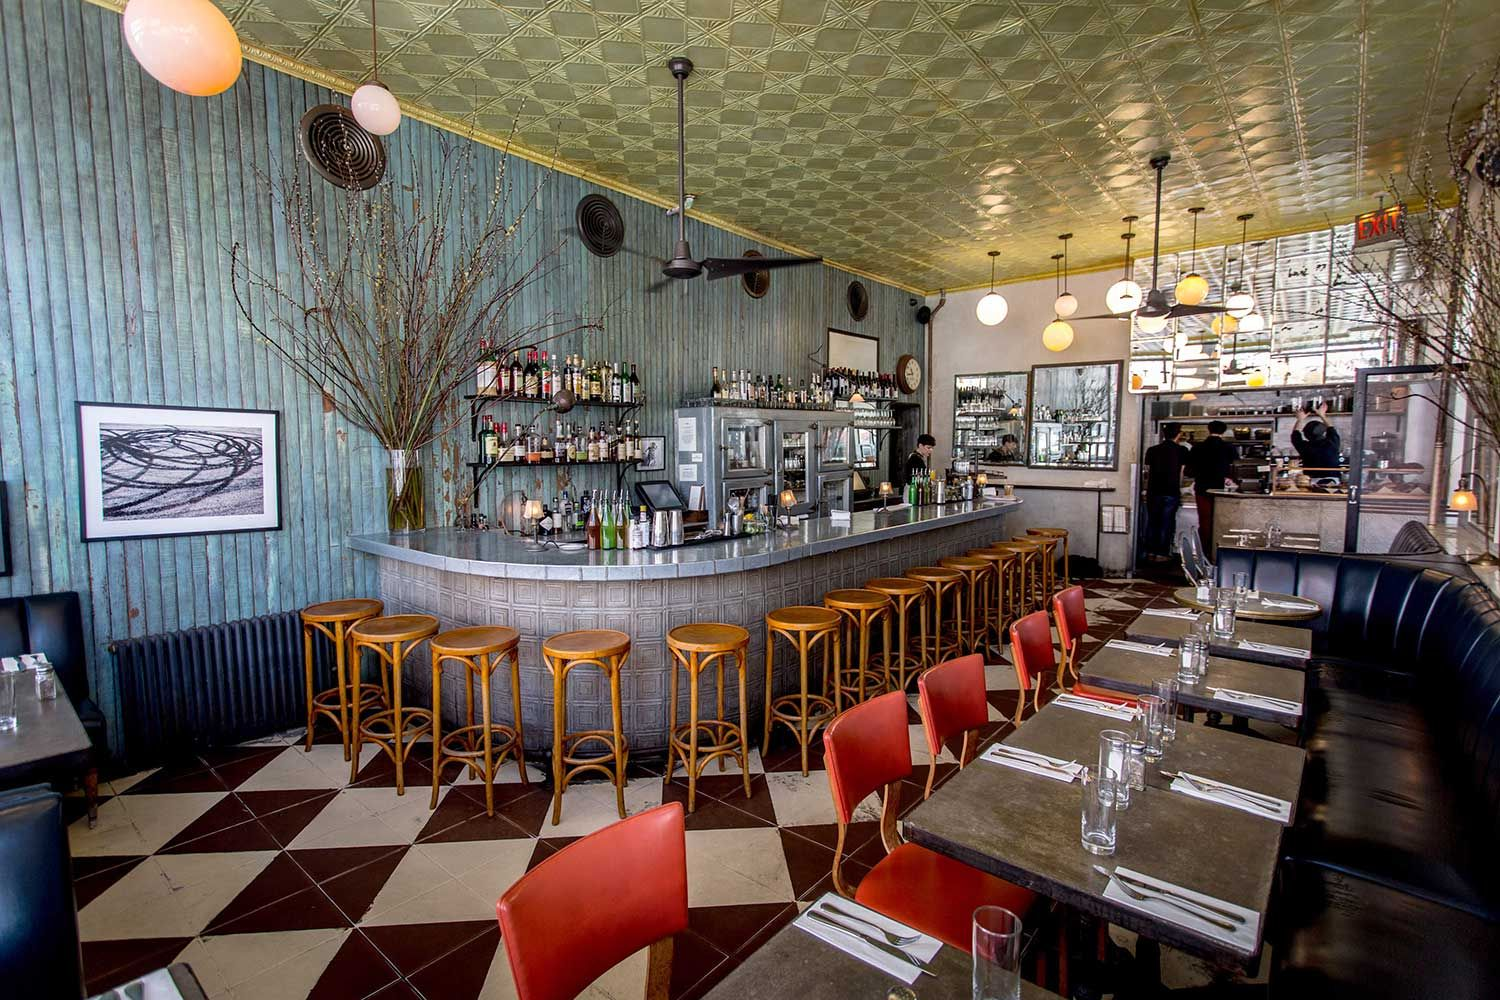 Cafe colette berry st brooklyn ny eclectic restaurant